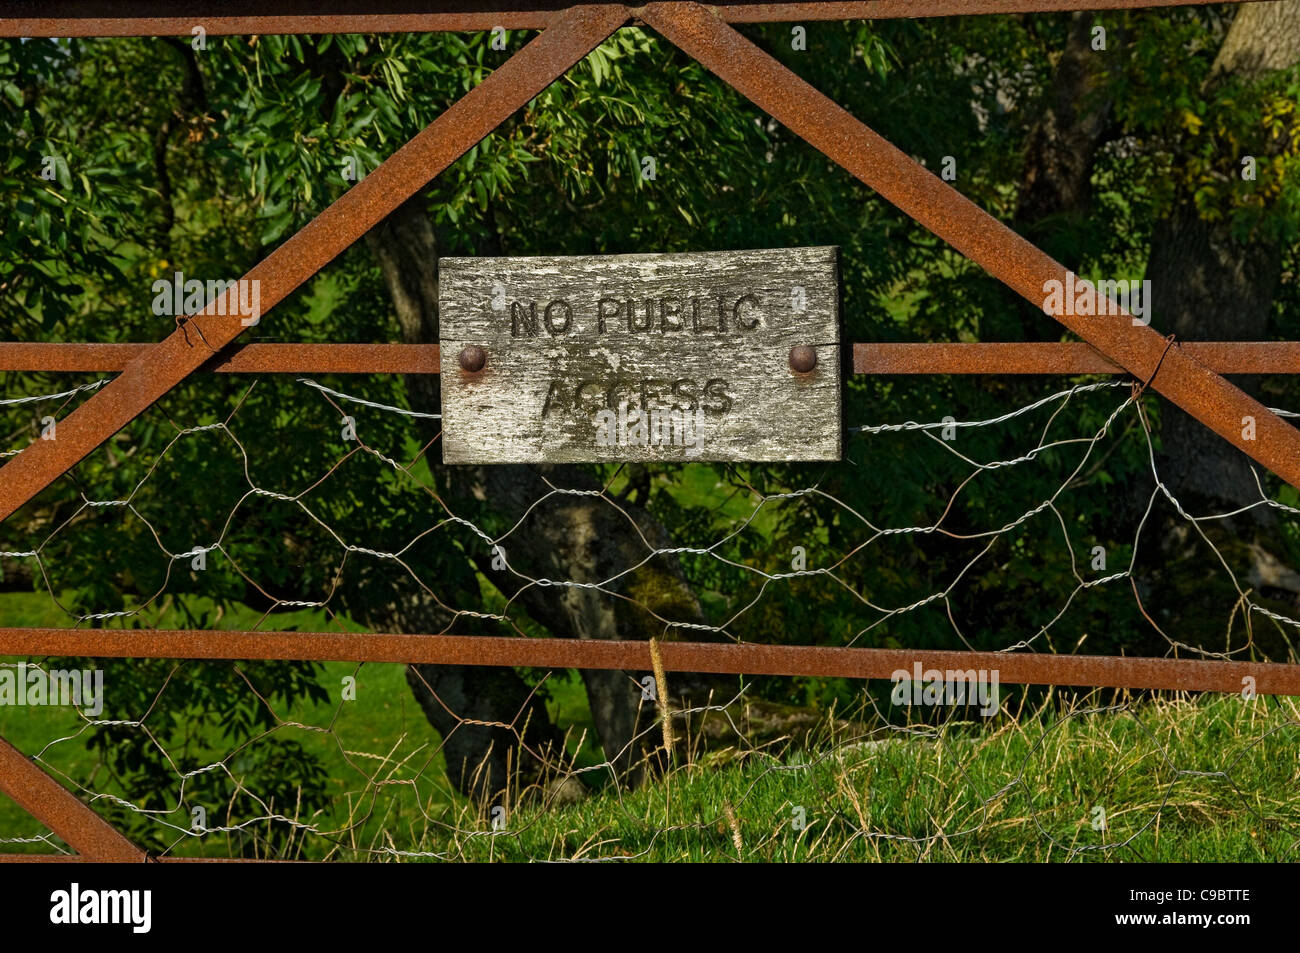 No public access sign on rusty metal gate North Yorkshire England UK United Kingdom GB Great Britain - Stock Image